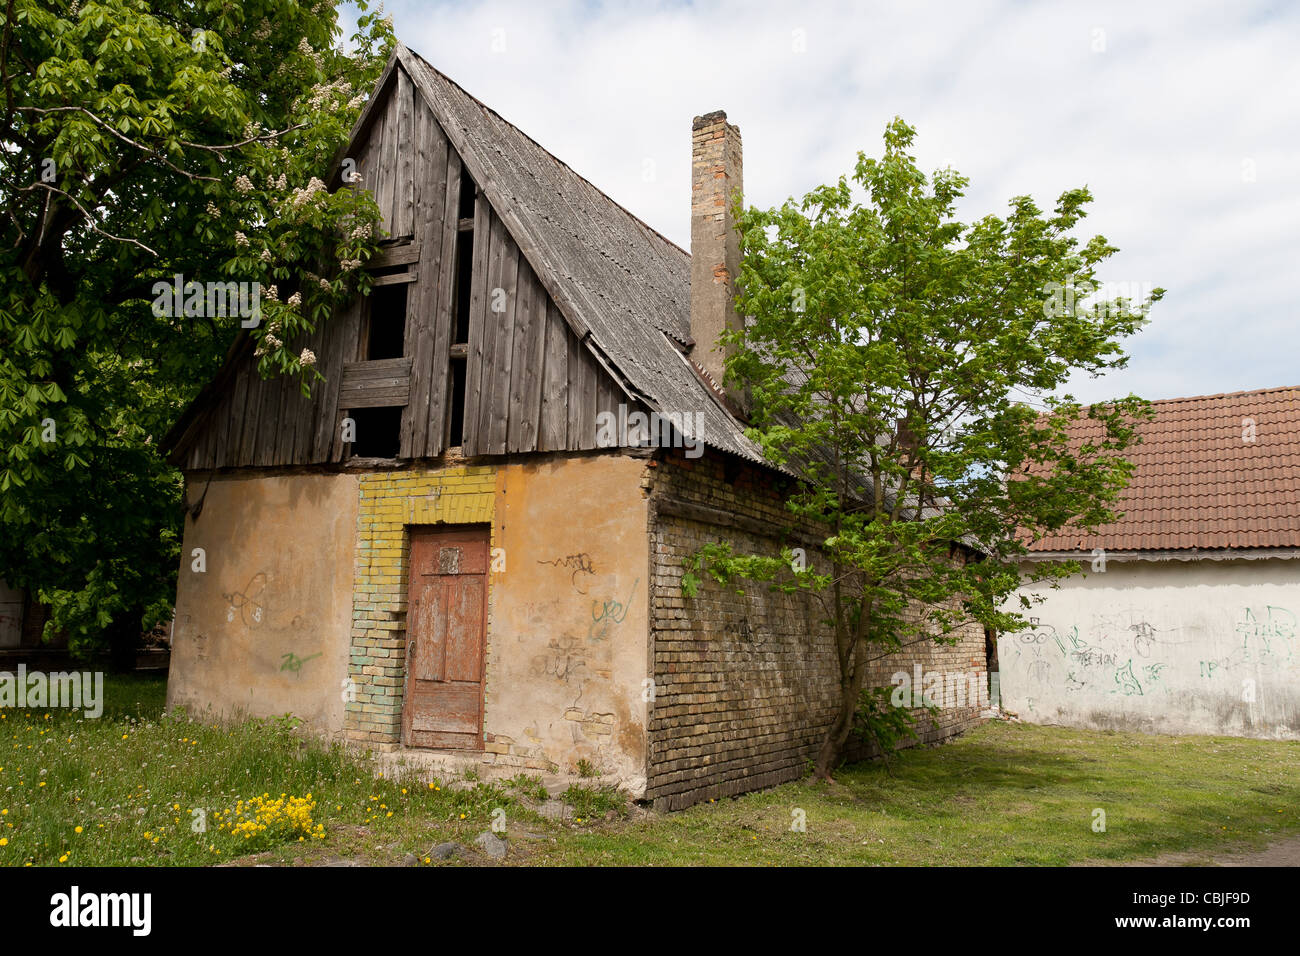 A abandoned house with breaked roof side - Stock Image